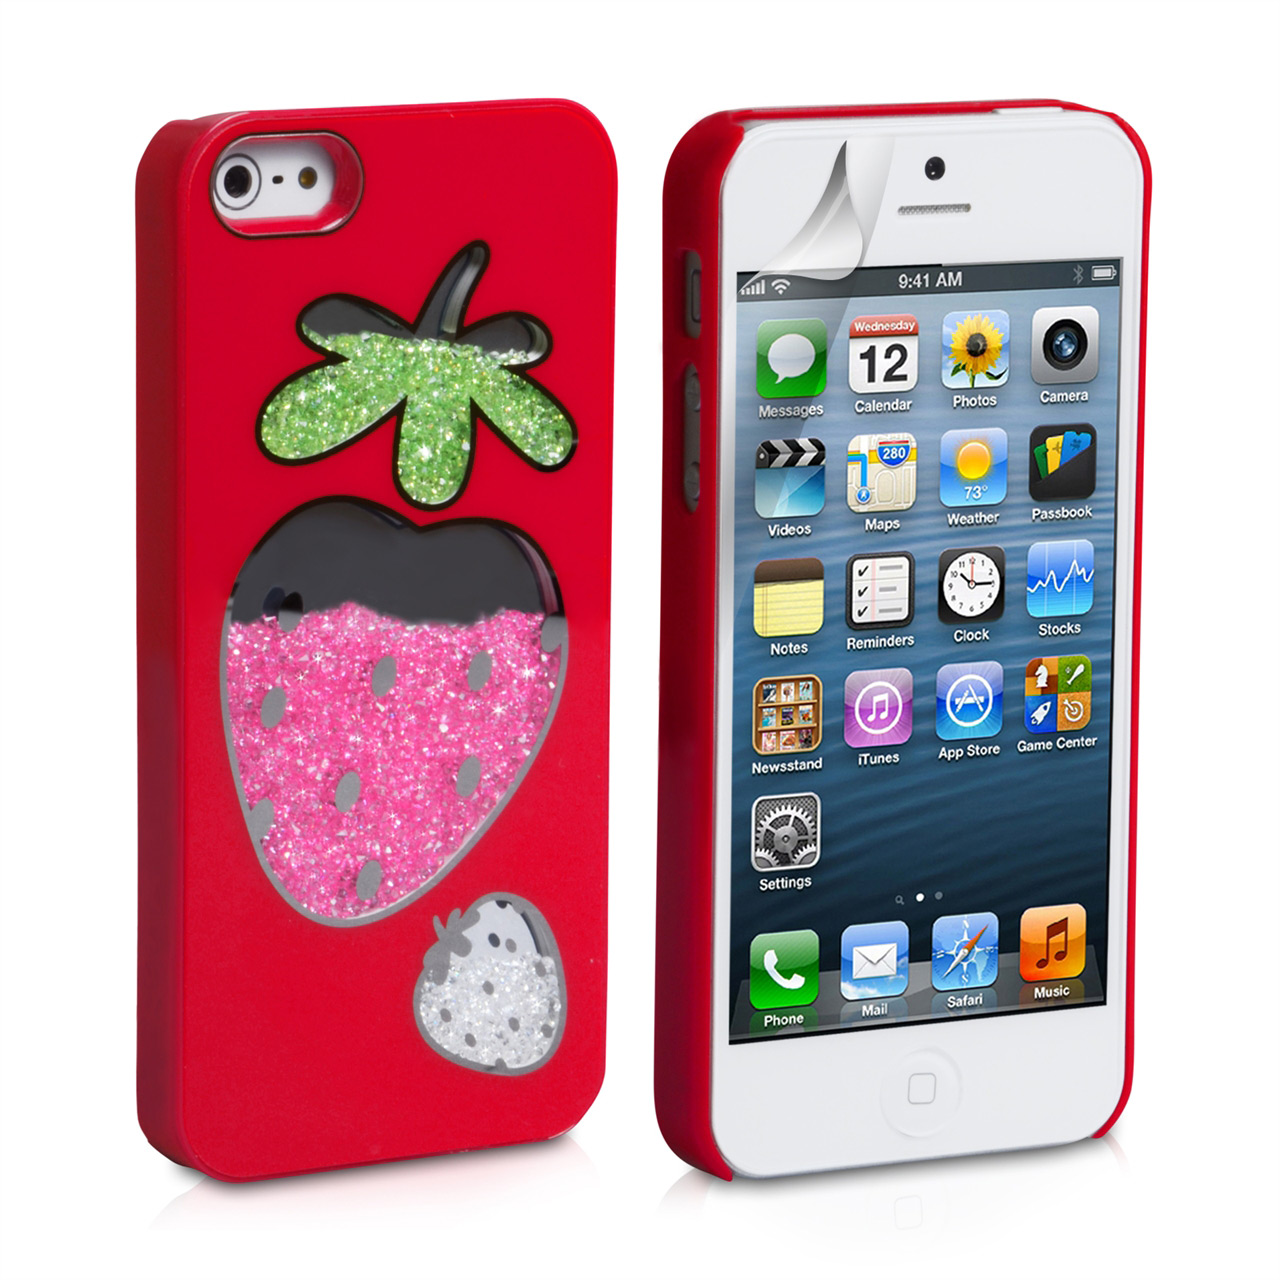 YouSave Accessories iPhone 5 / 5S Red Strawberry Bling Hard Case